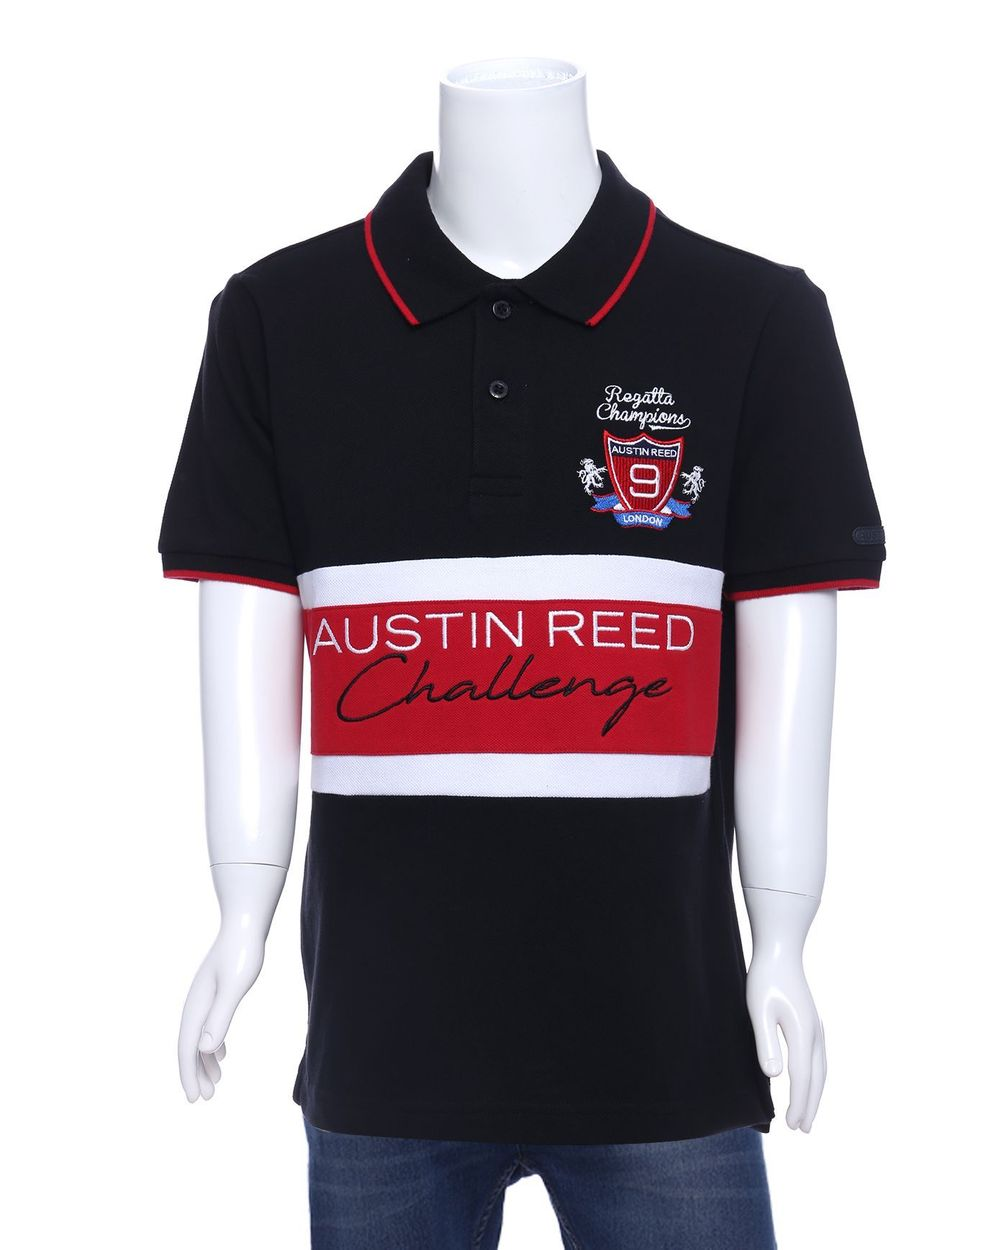 Austin Reed Regatta Boys Black Polo Shirt 11 12 Years Buy Clothing Online Best Price And Offers Ksa Hnak Com